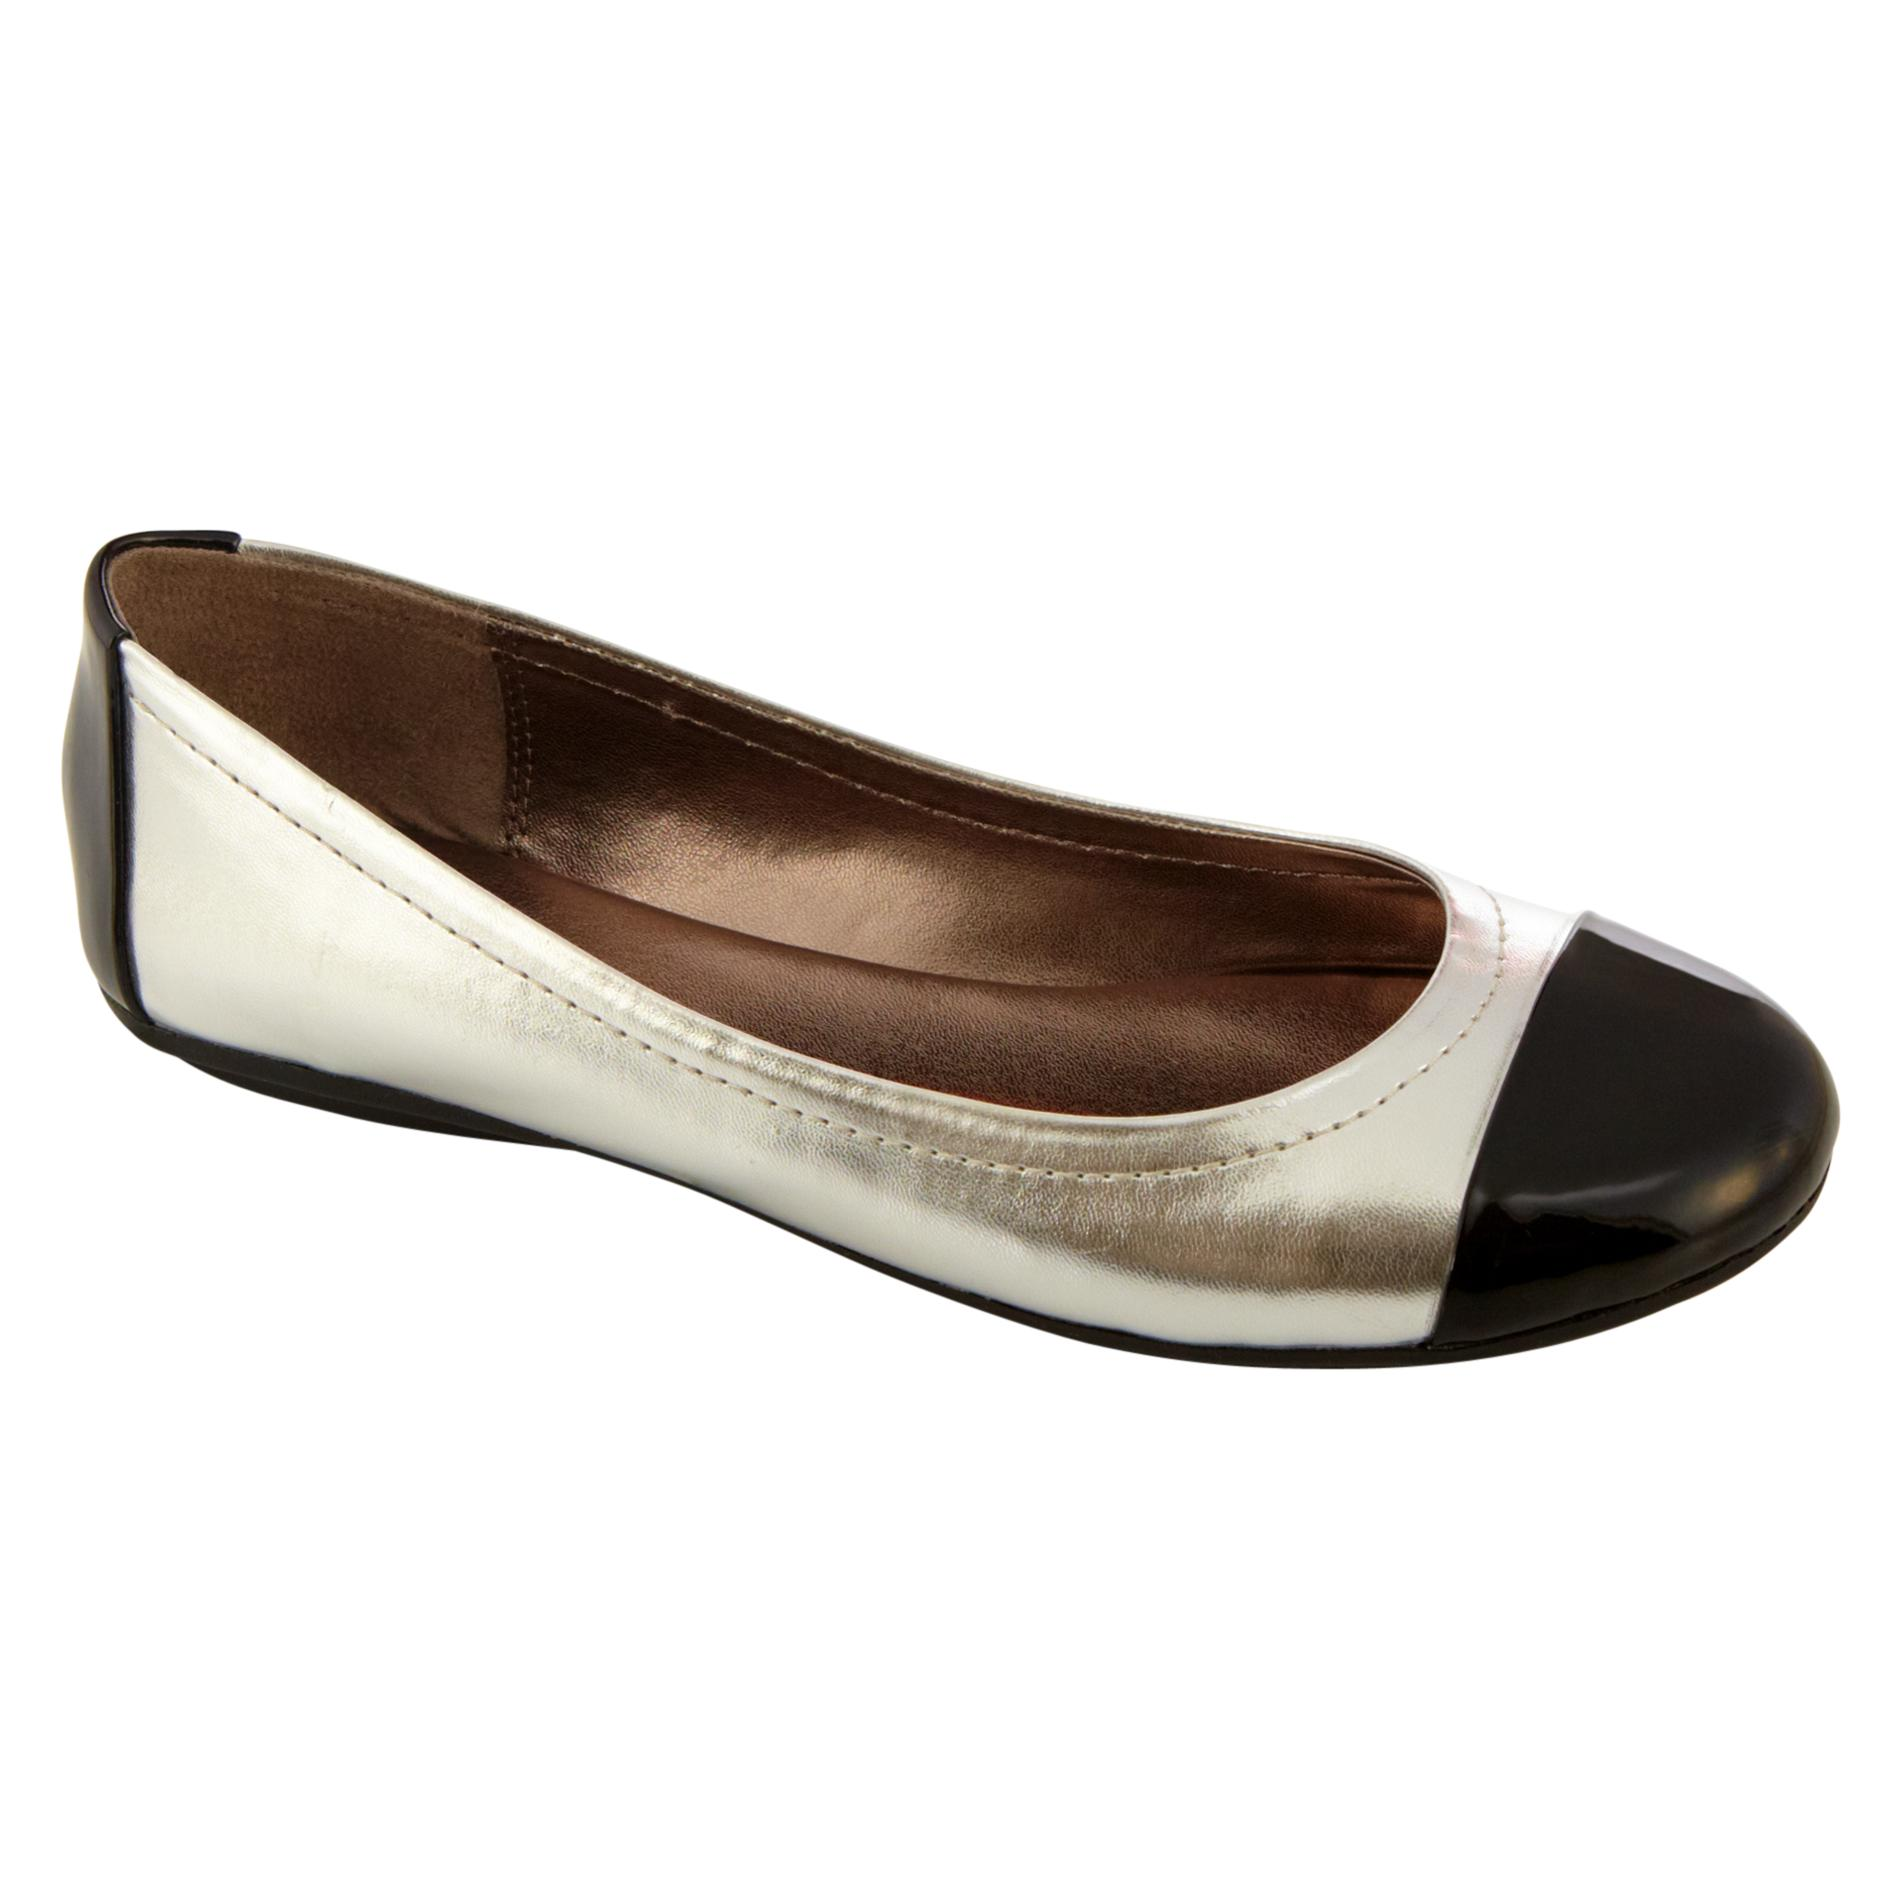 Womens Shoes at mygofer.com